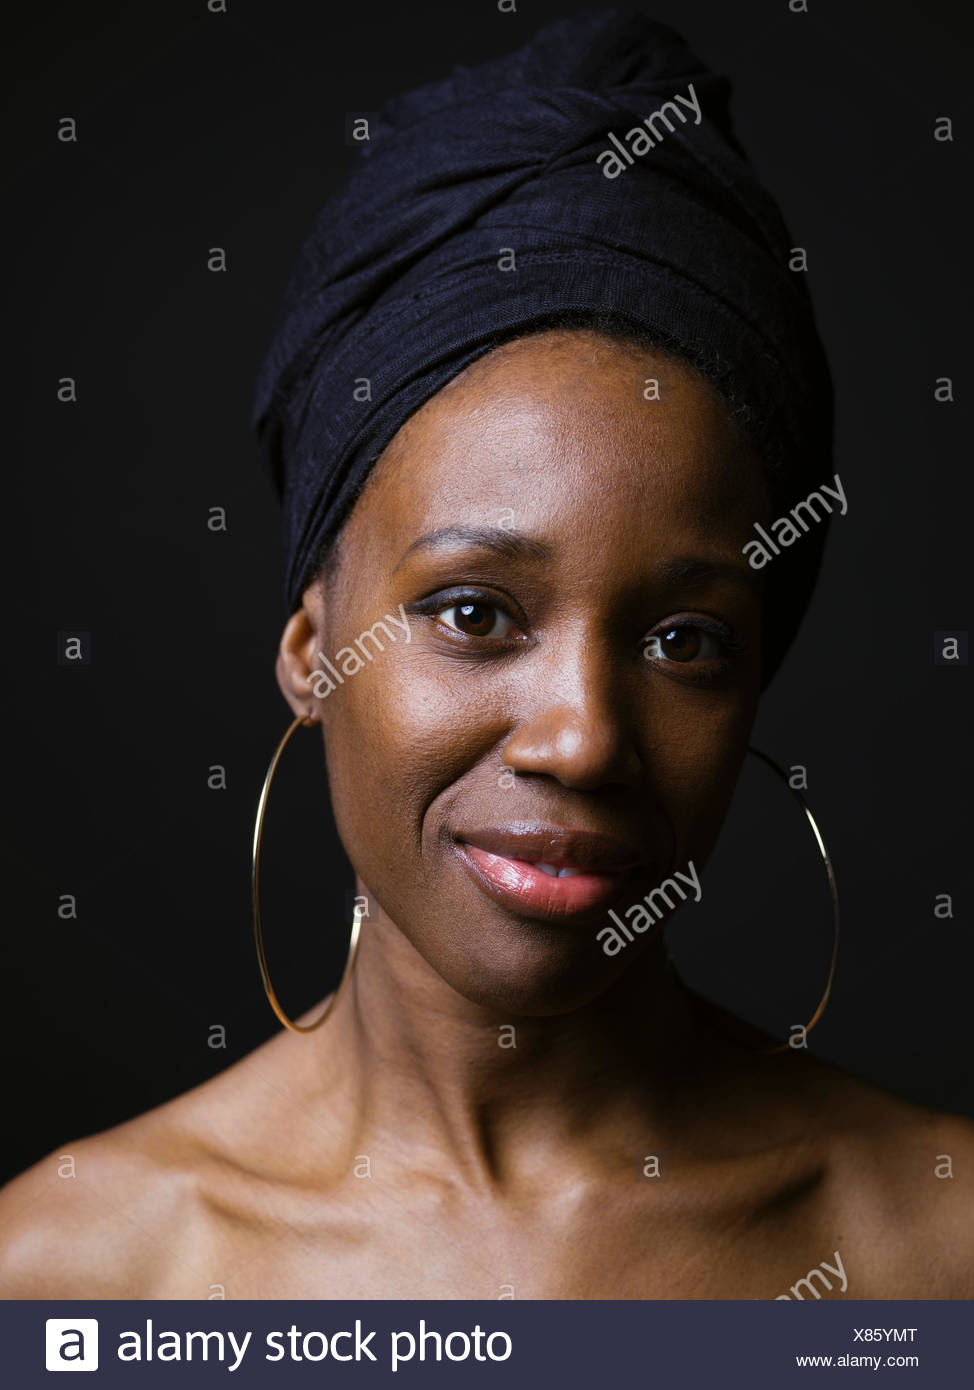 75cb4f741bf76 Portrait confident African American woman wearing headscarf and hoop ...